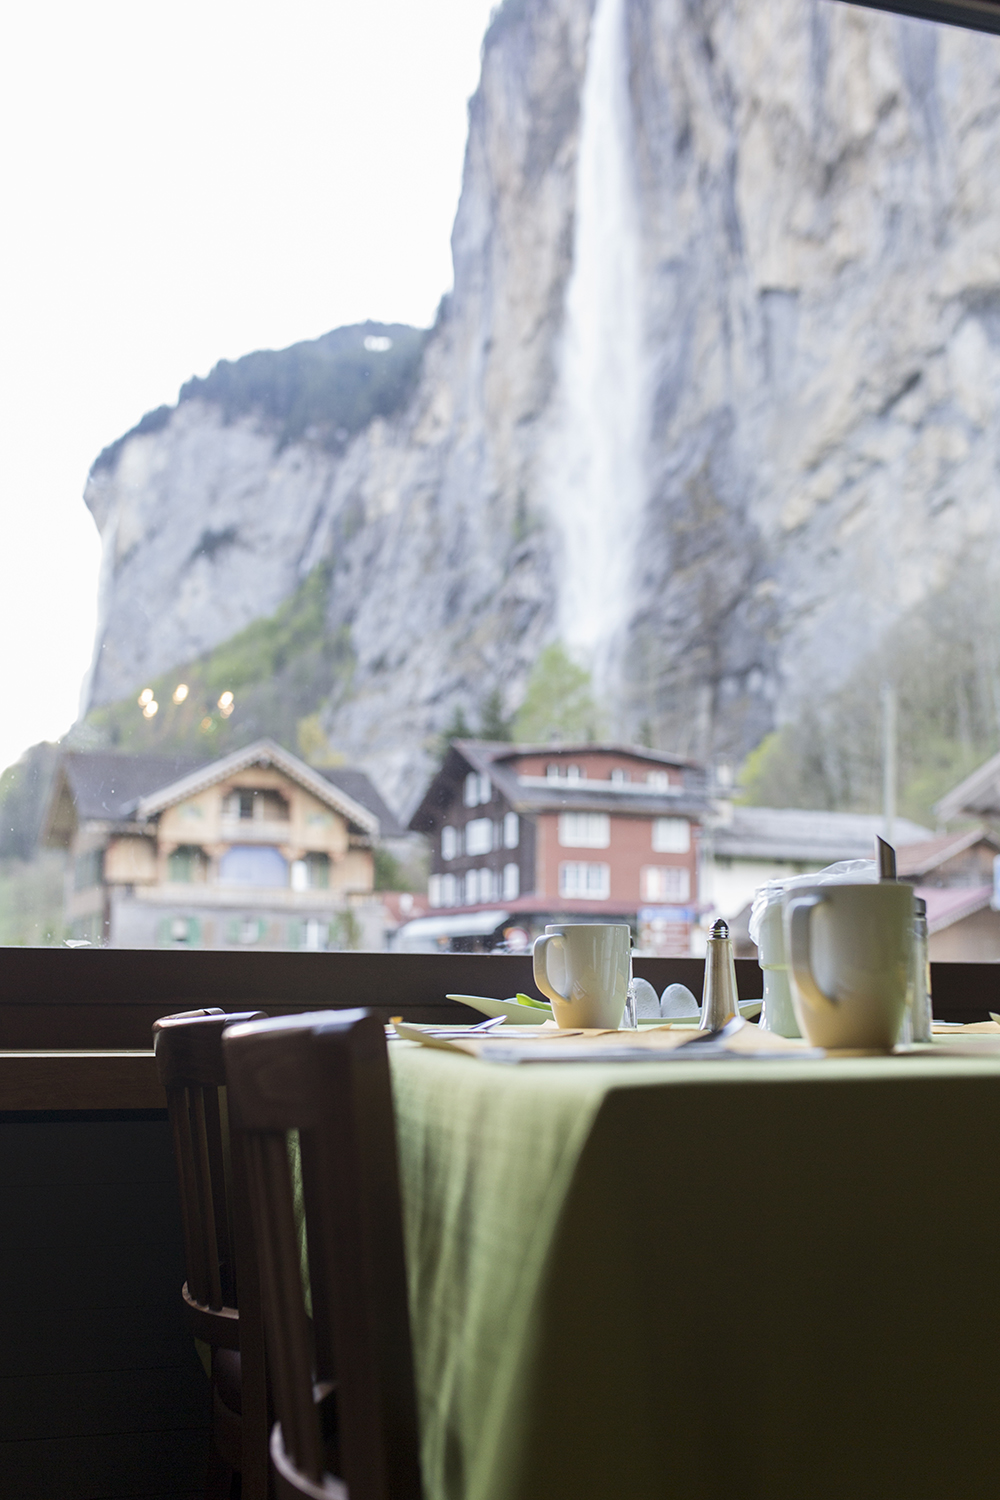 Exploring this beautiful town with snow-capped mountains, high cliffs, and 72 waterfalls and the most intimate stay at Hotel Staubbach in Lauterbrunnen, Switzerland!